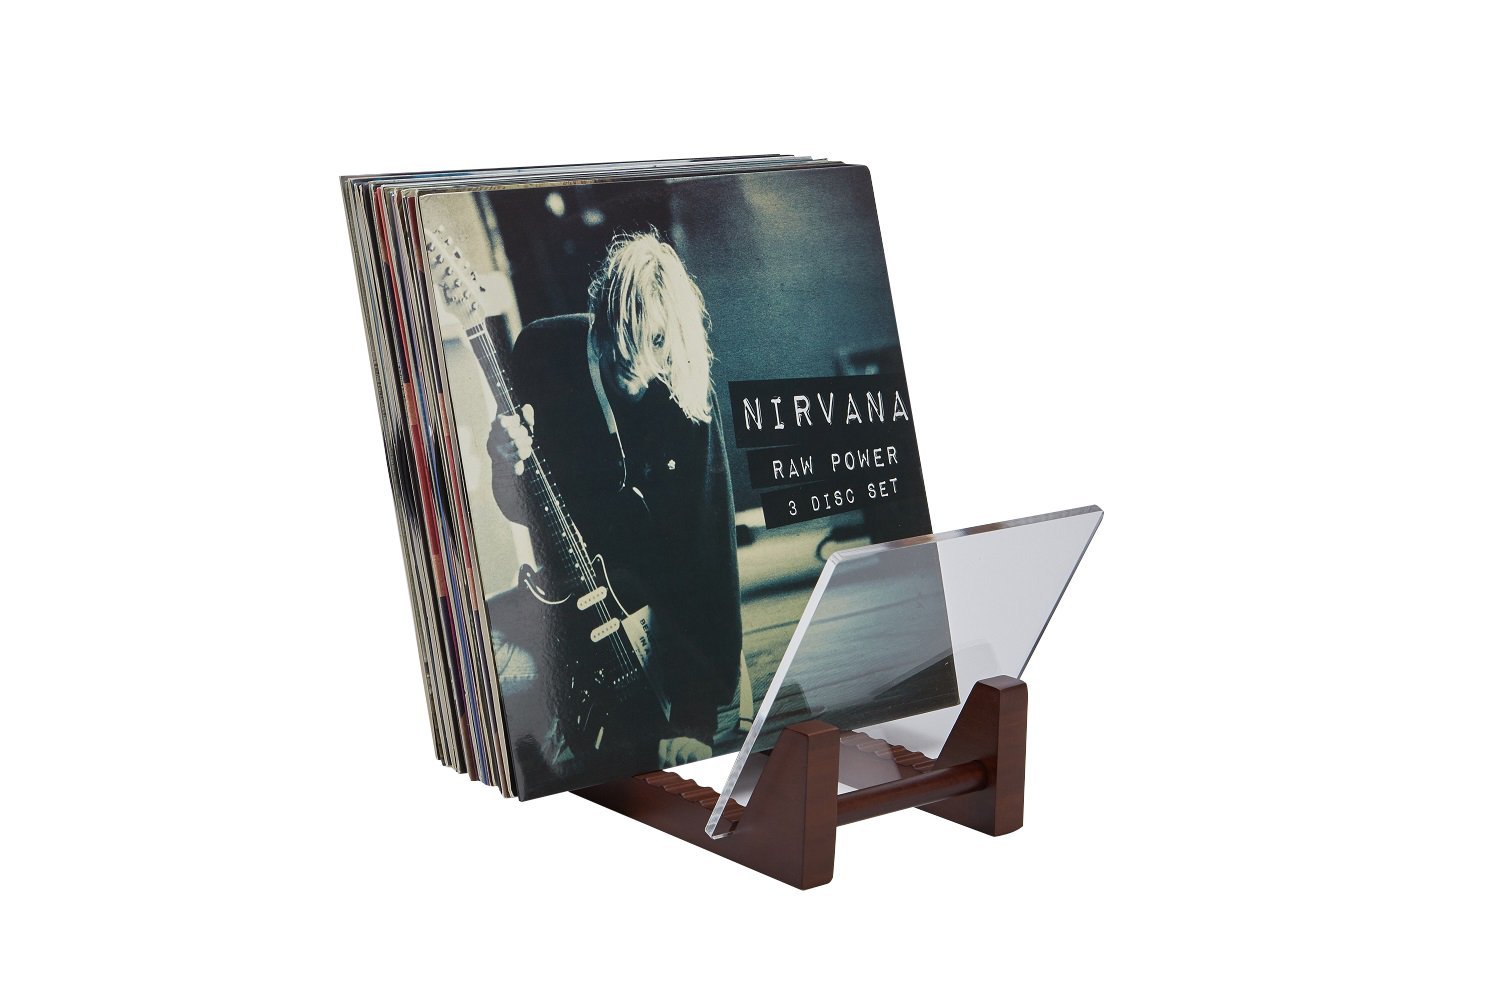 Not Soft Pine Wood-Holds Up to 30 Albums Durable Acrylic -Eco-Friendly Display Stand /… Natural, 9.8 Modern 12 /& 7 LP Stand Display Holder - Saki Joy Hard Bamboo Desktop Record Storage